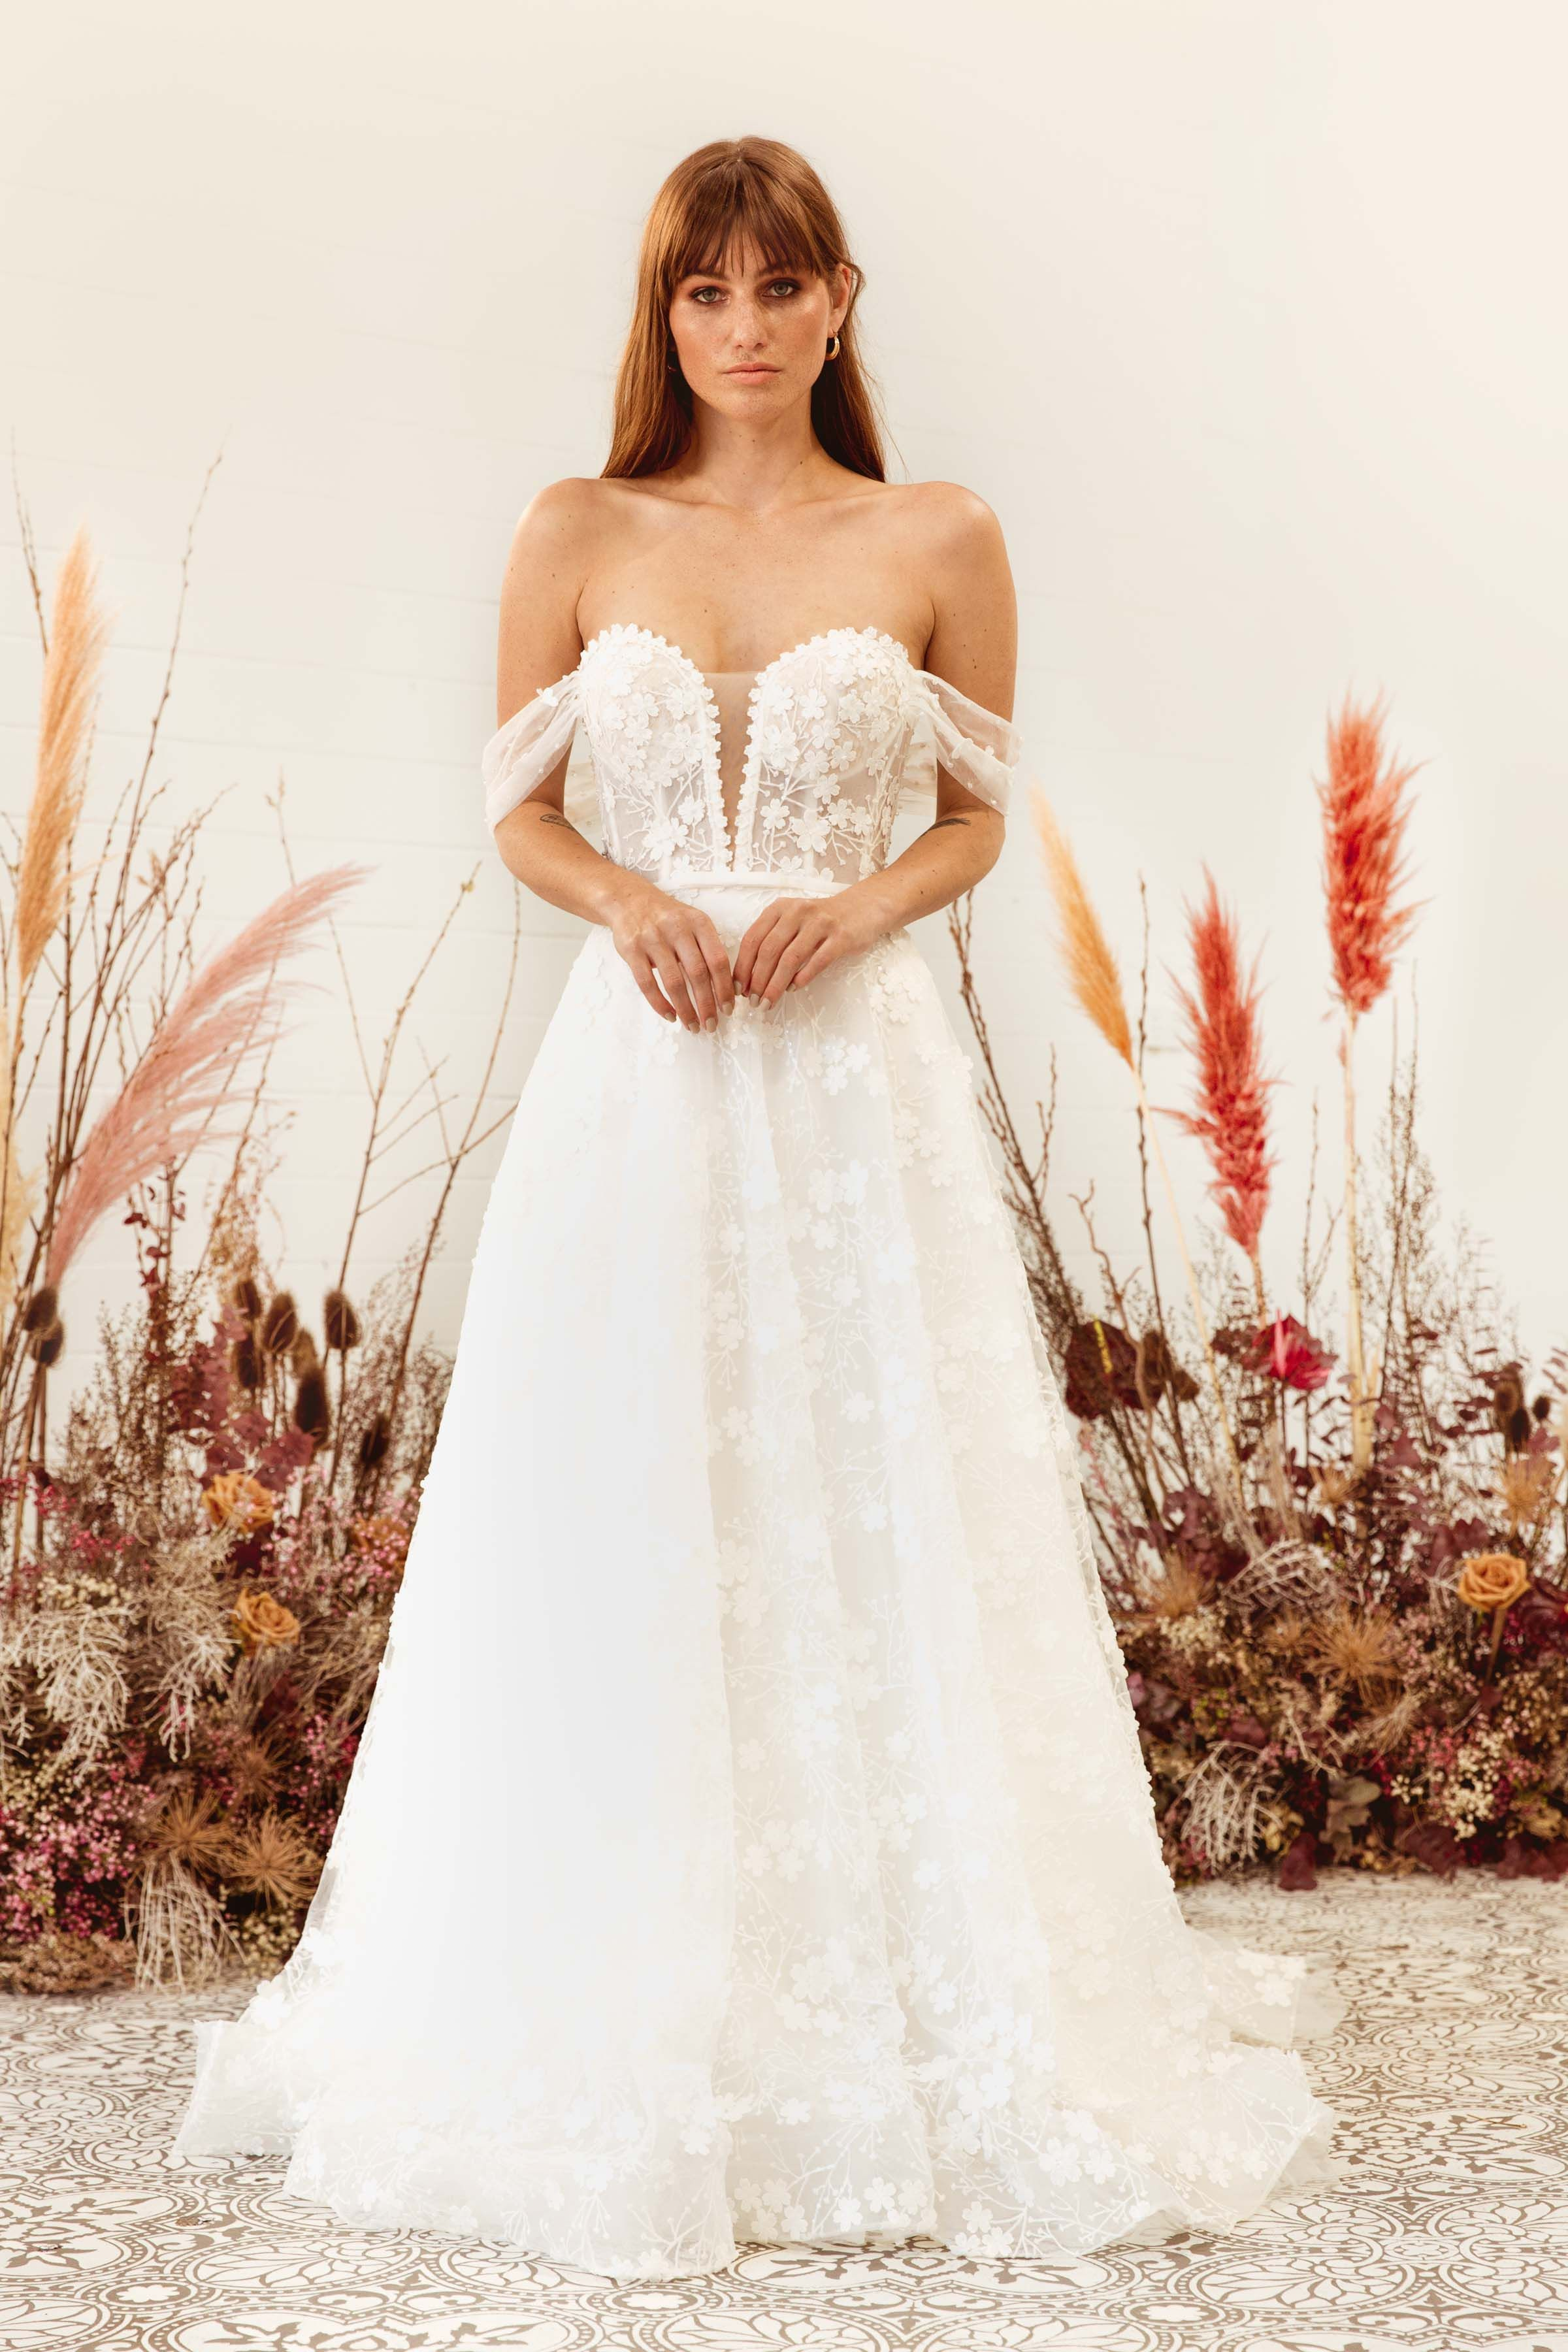 Wa 296 By White April In 2020 Wedding Dresses Nz Destination Wedding Dress Wedding Dresses Romantic